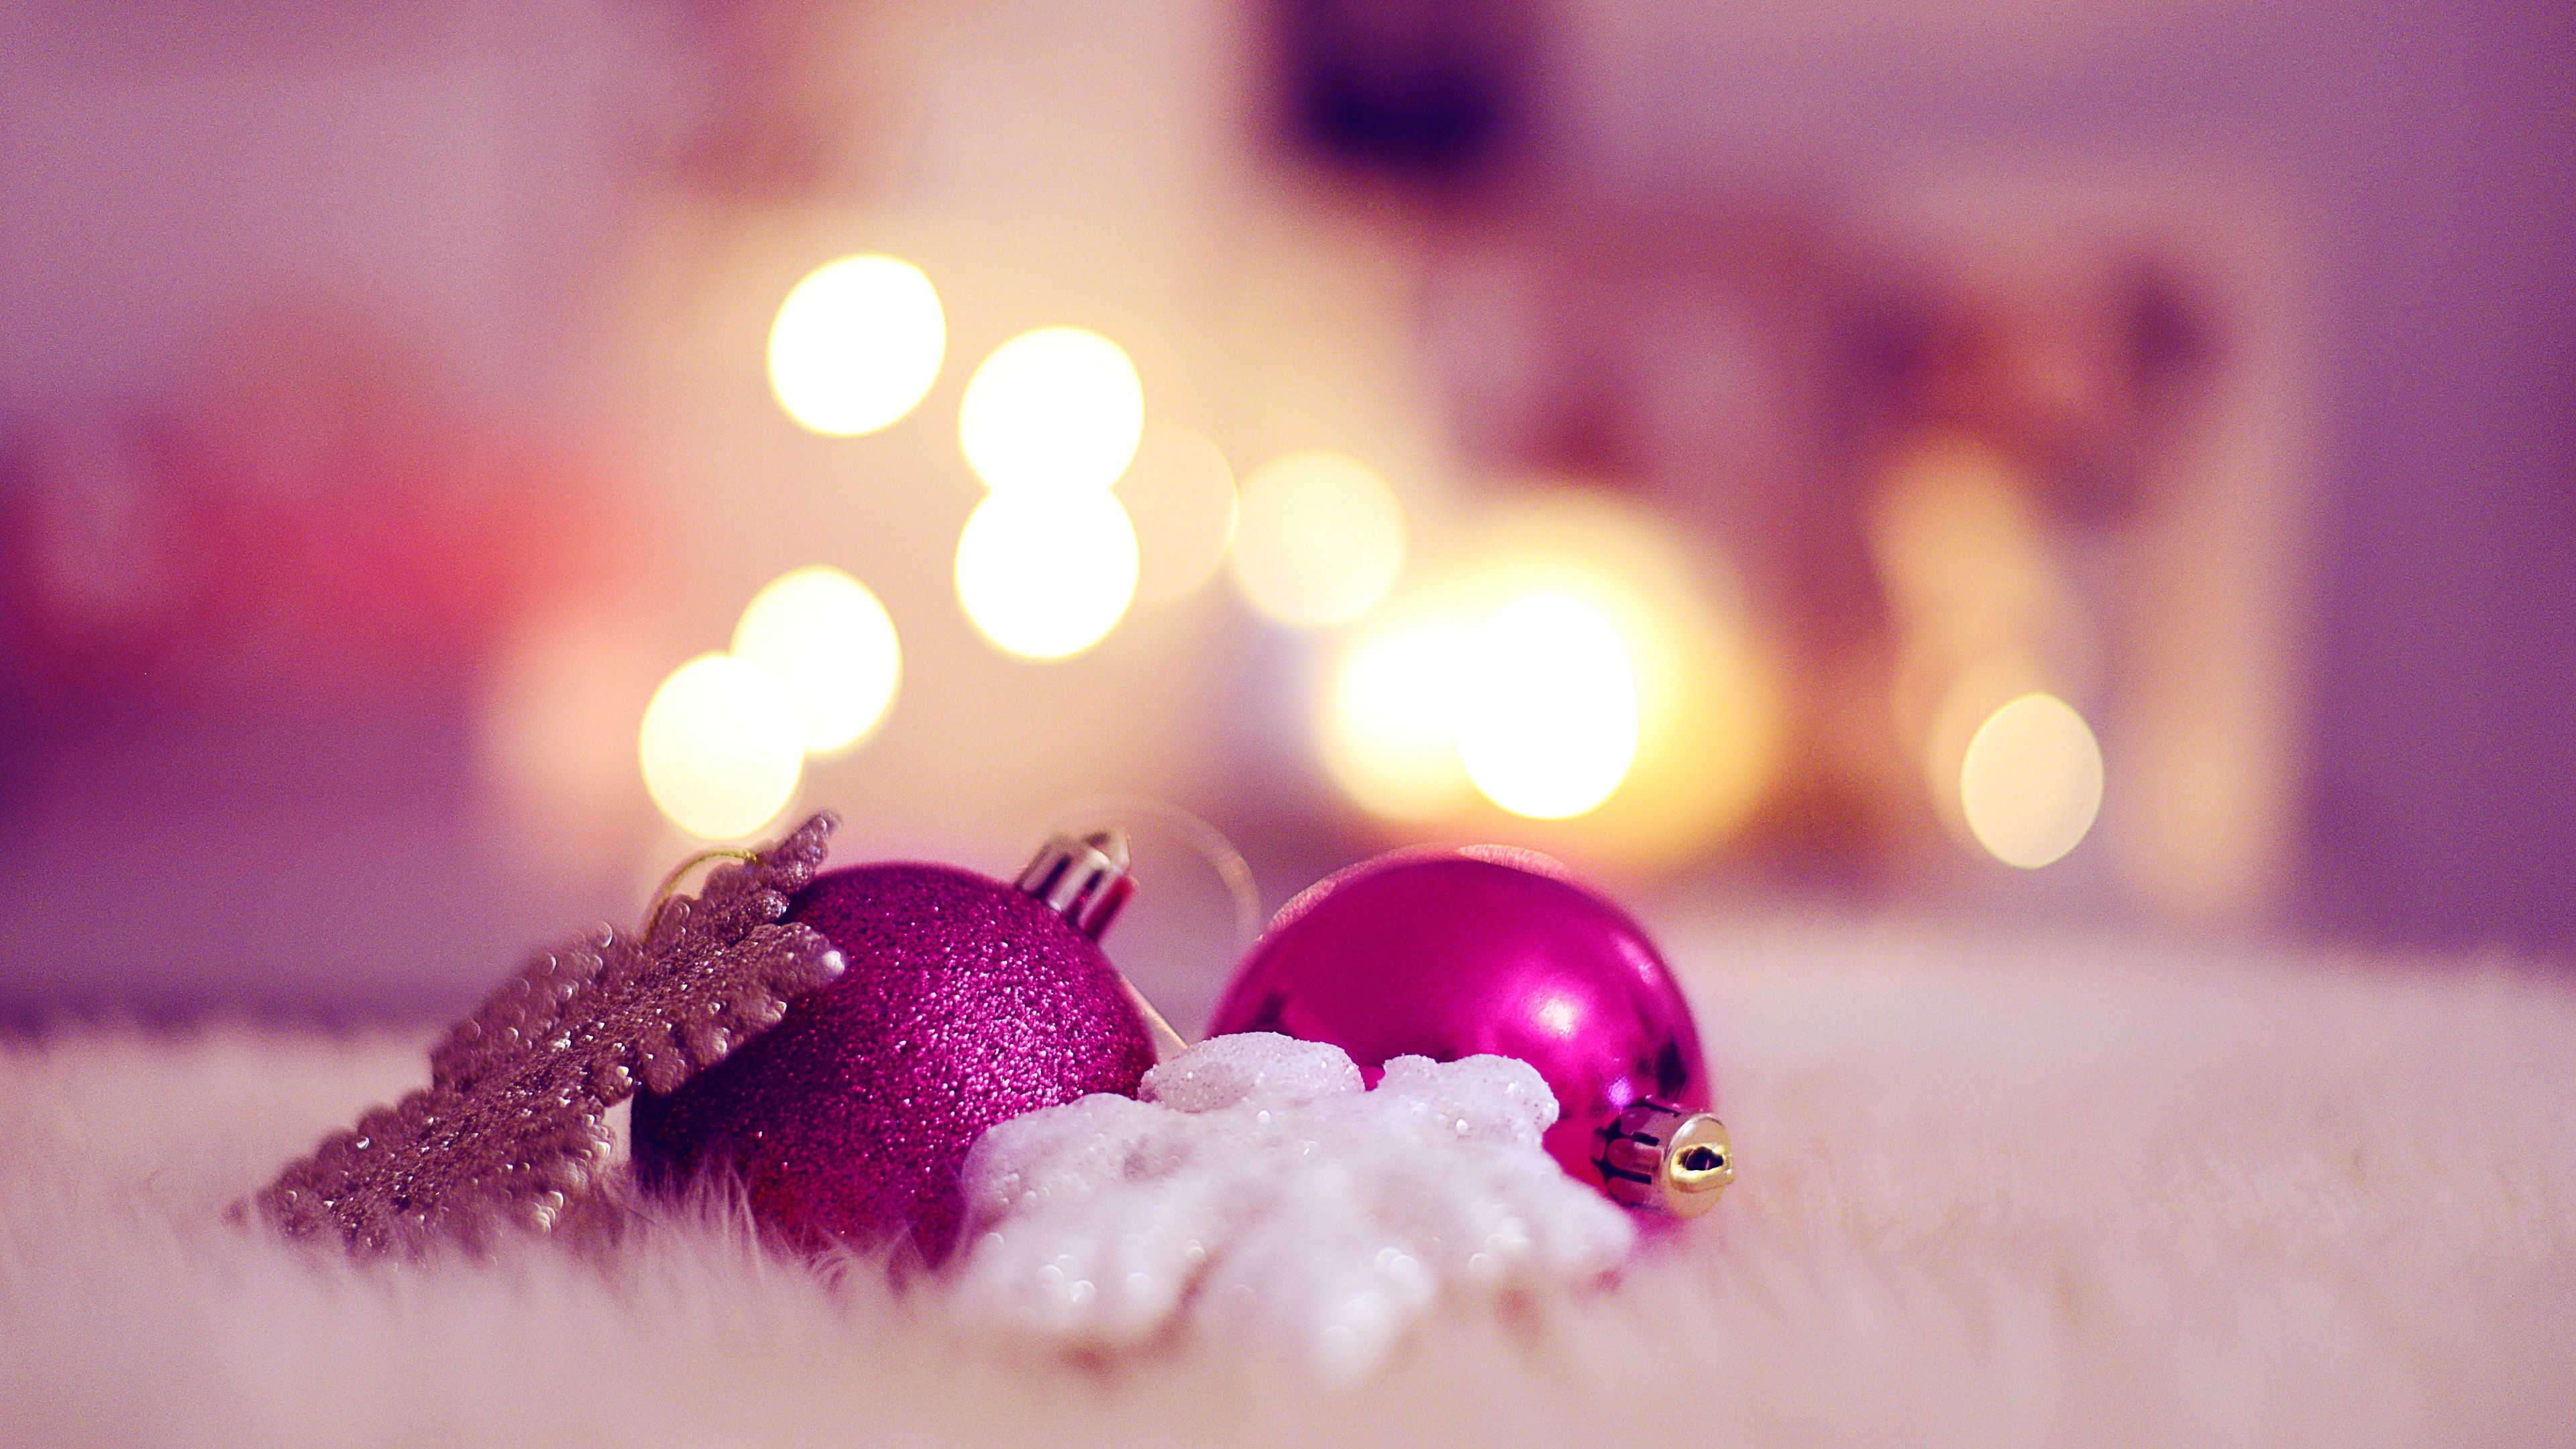 Christmas Bells Ultra 4k Pink Wallpapers Holidays Wallpapers Hd Wallpapers Christmas Wallpapers Best Christmas Quotes Christmas Quotes Christmas Images Free